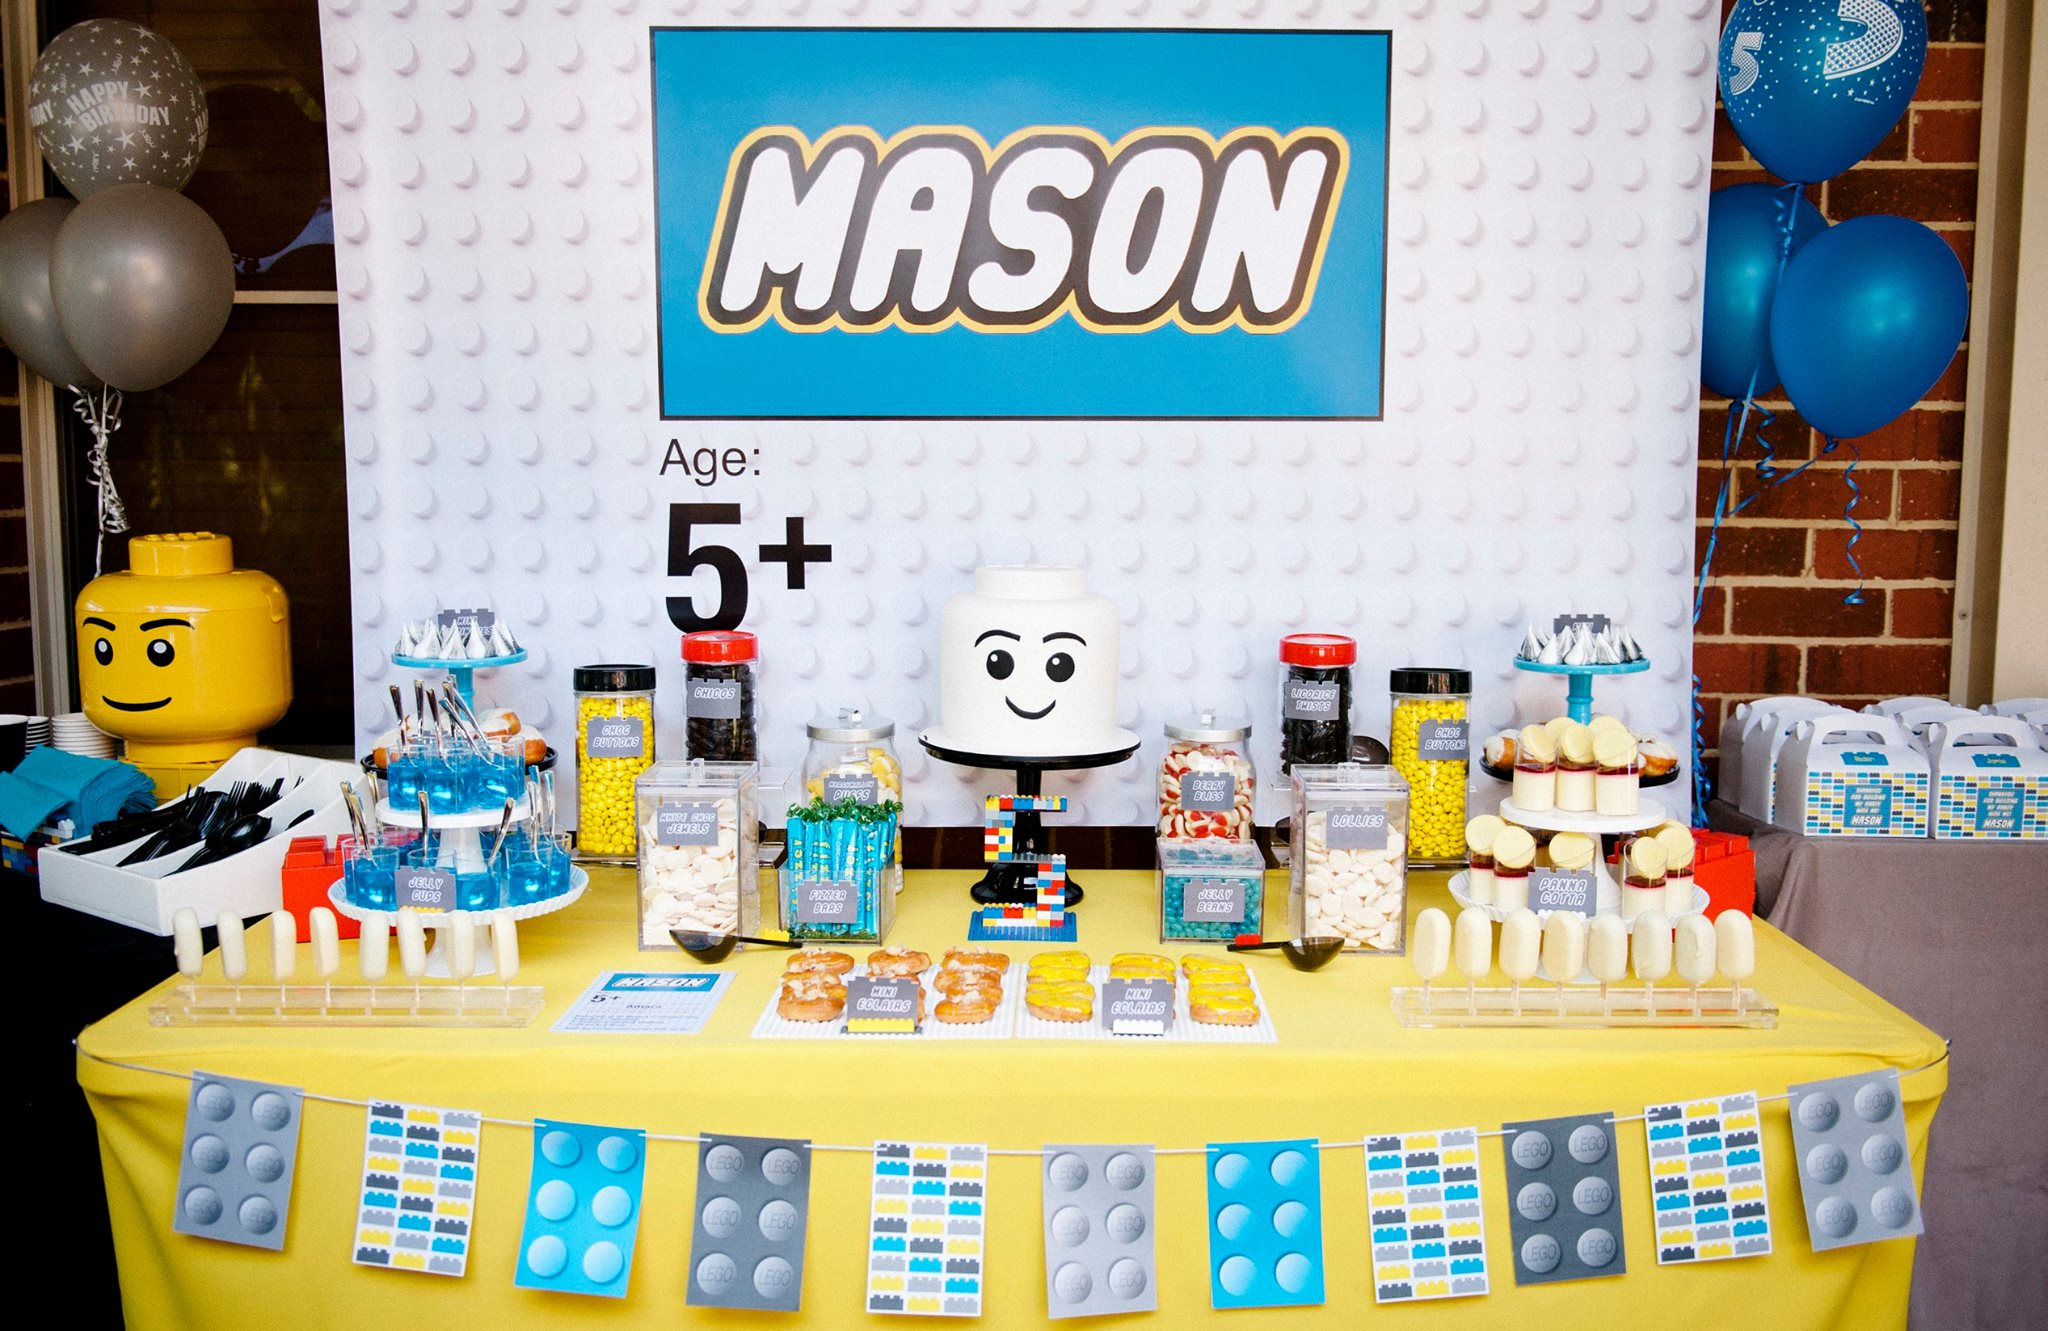 Lego dessert table - Dream a little dream children's parties